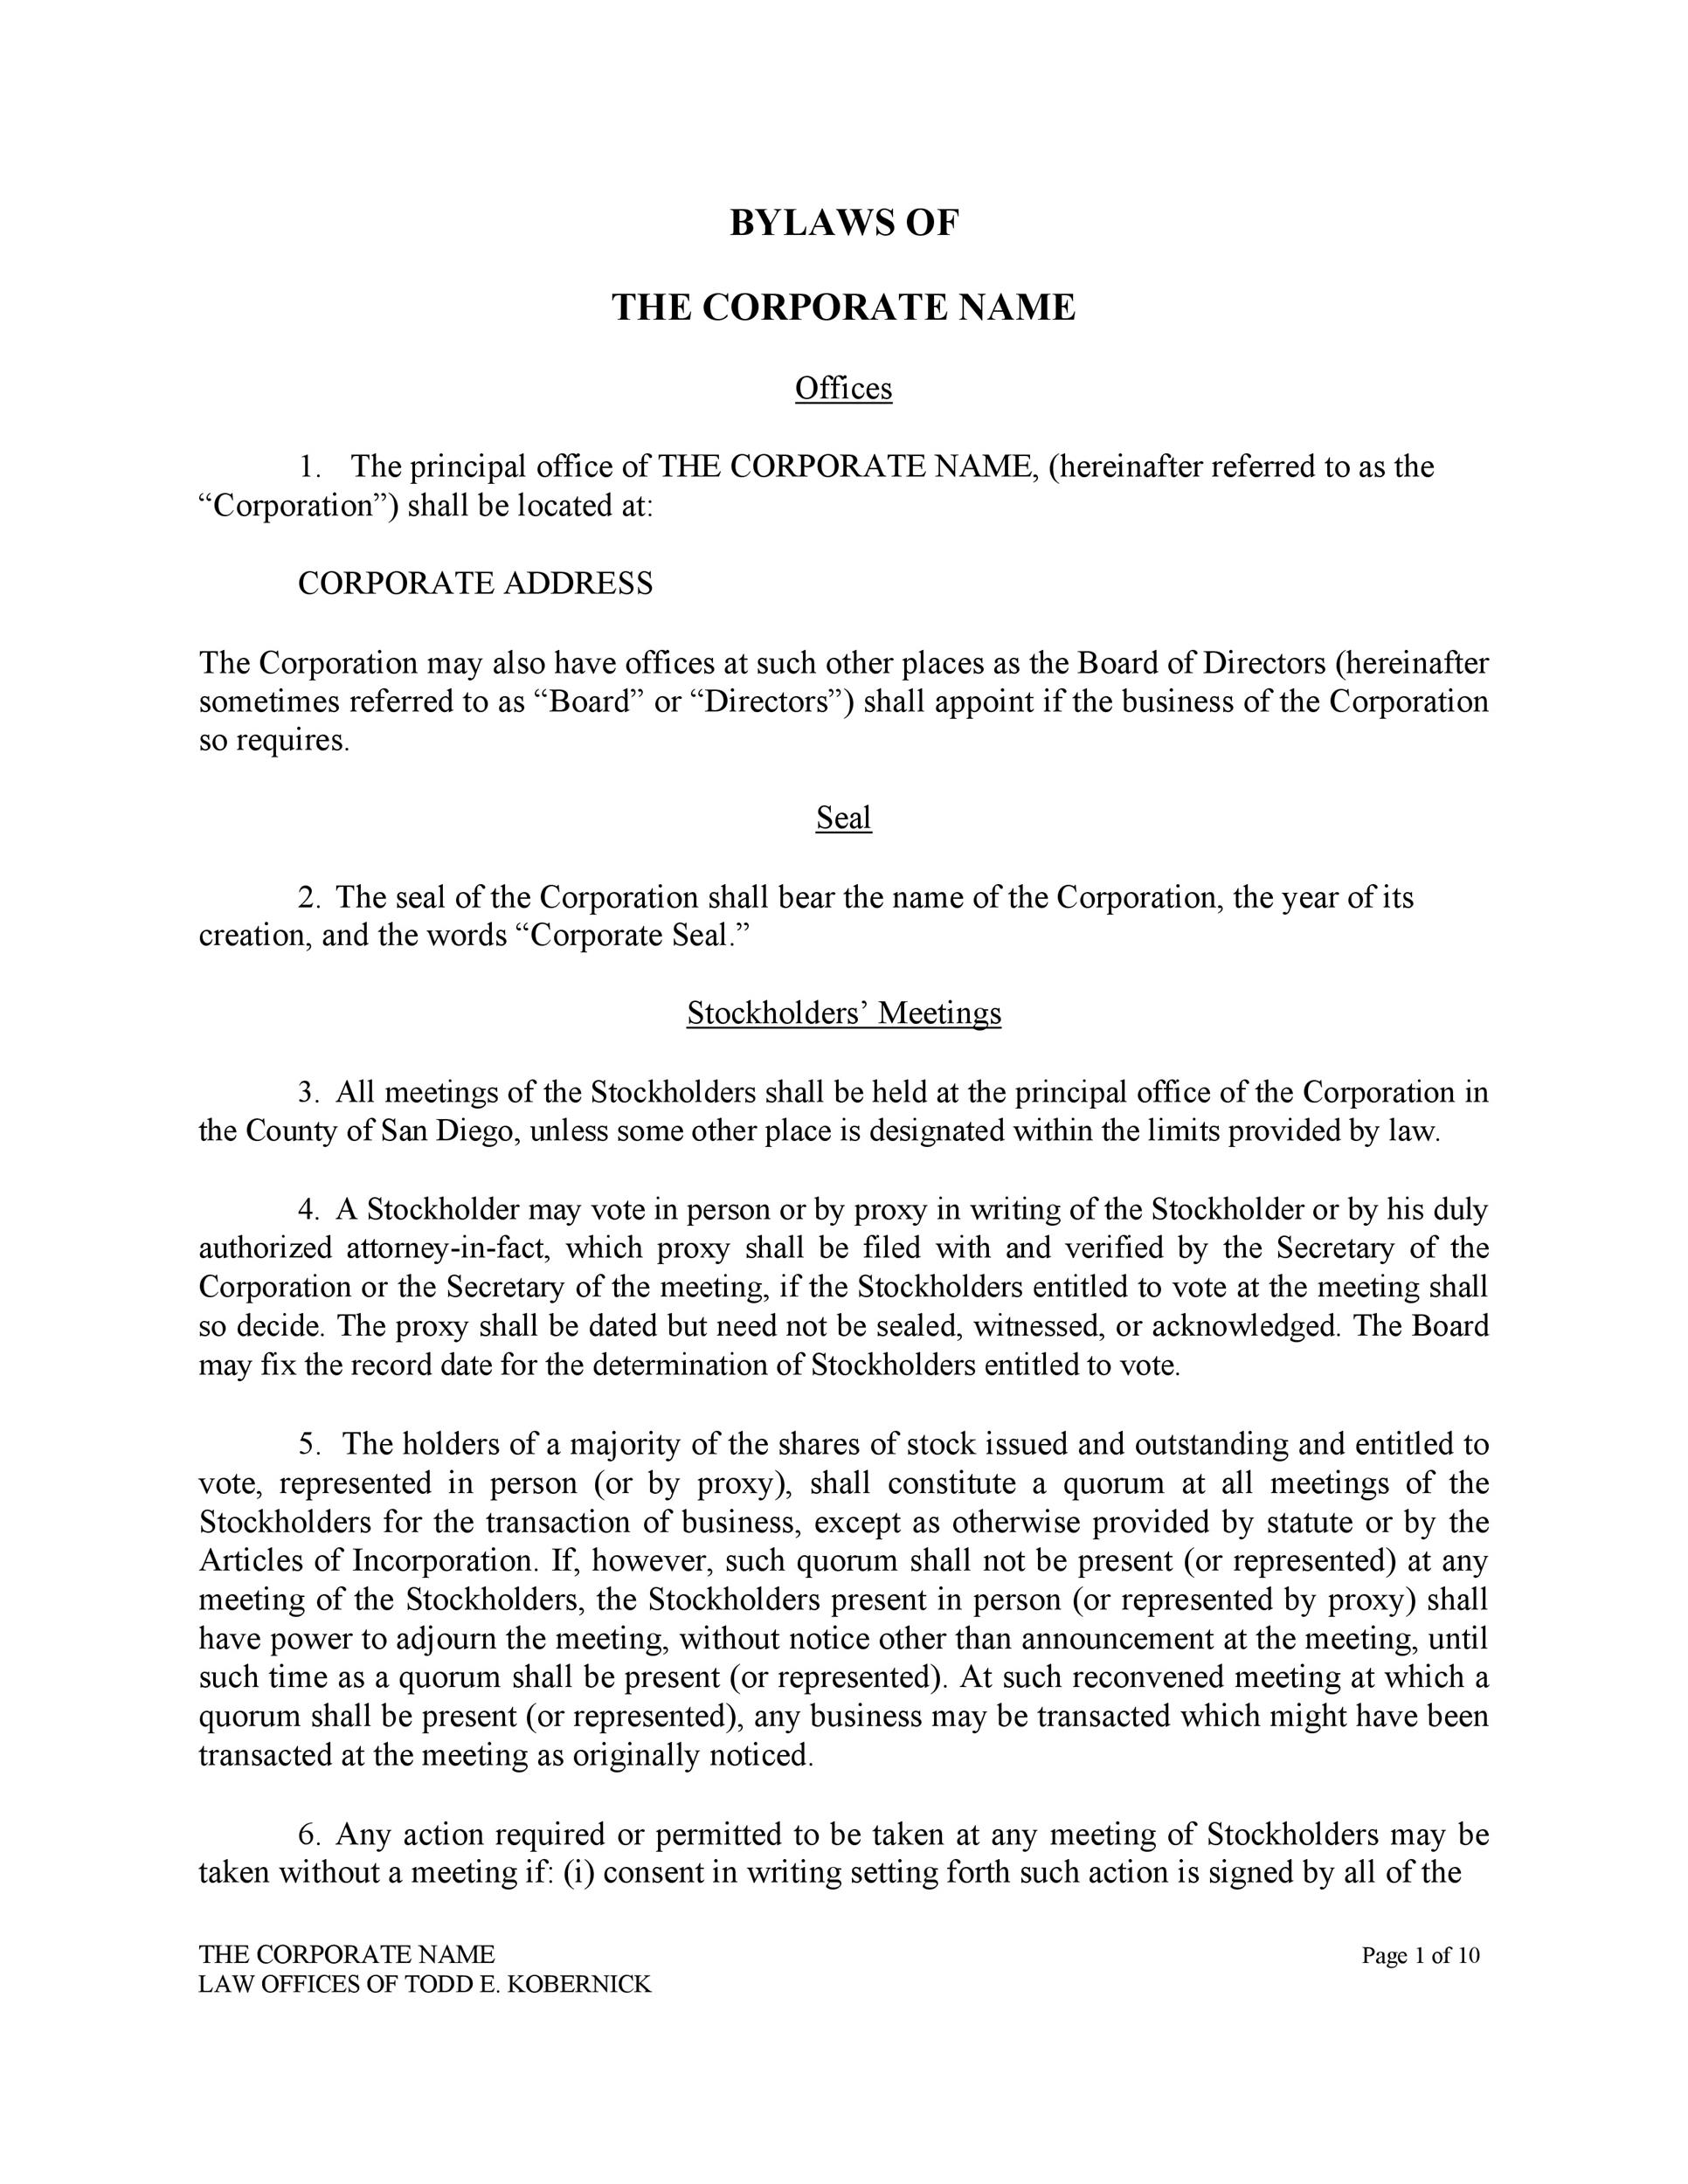 Corp To Corp Agreement Template Tutore